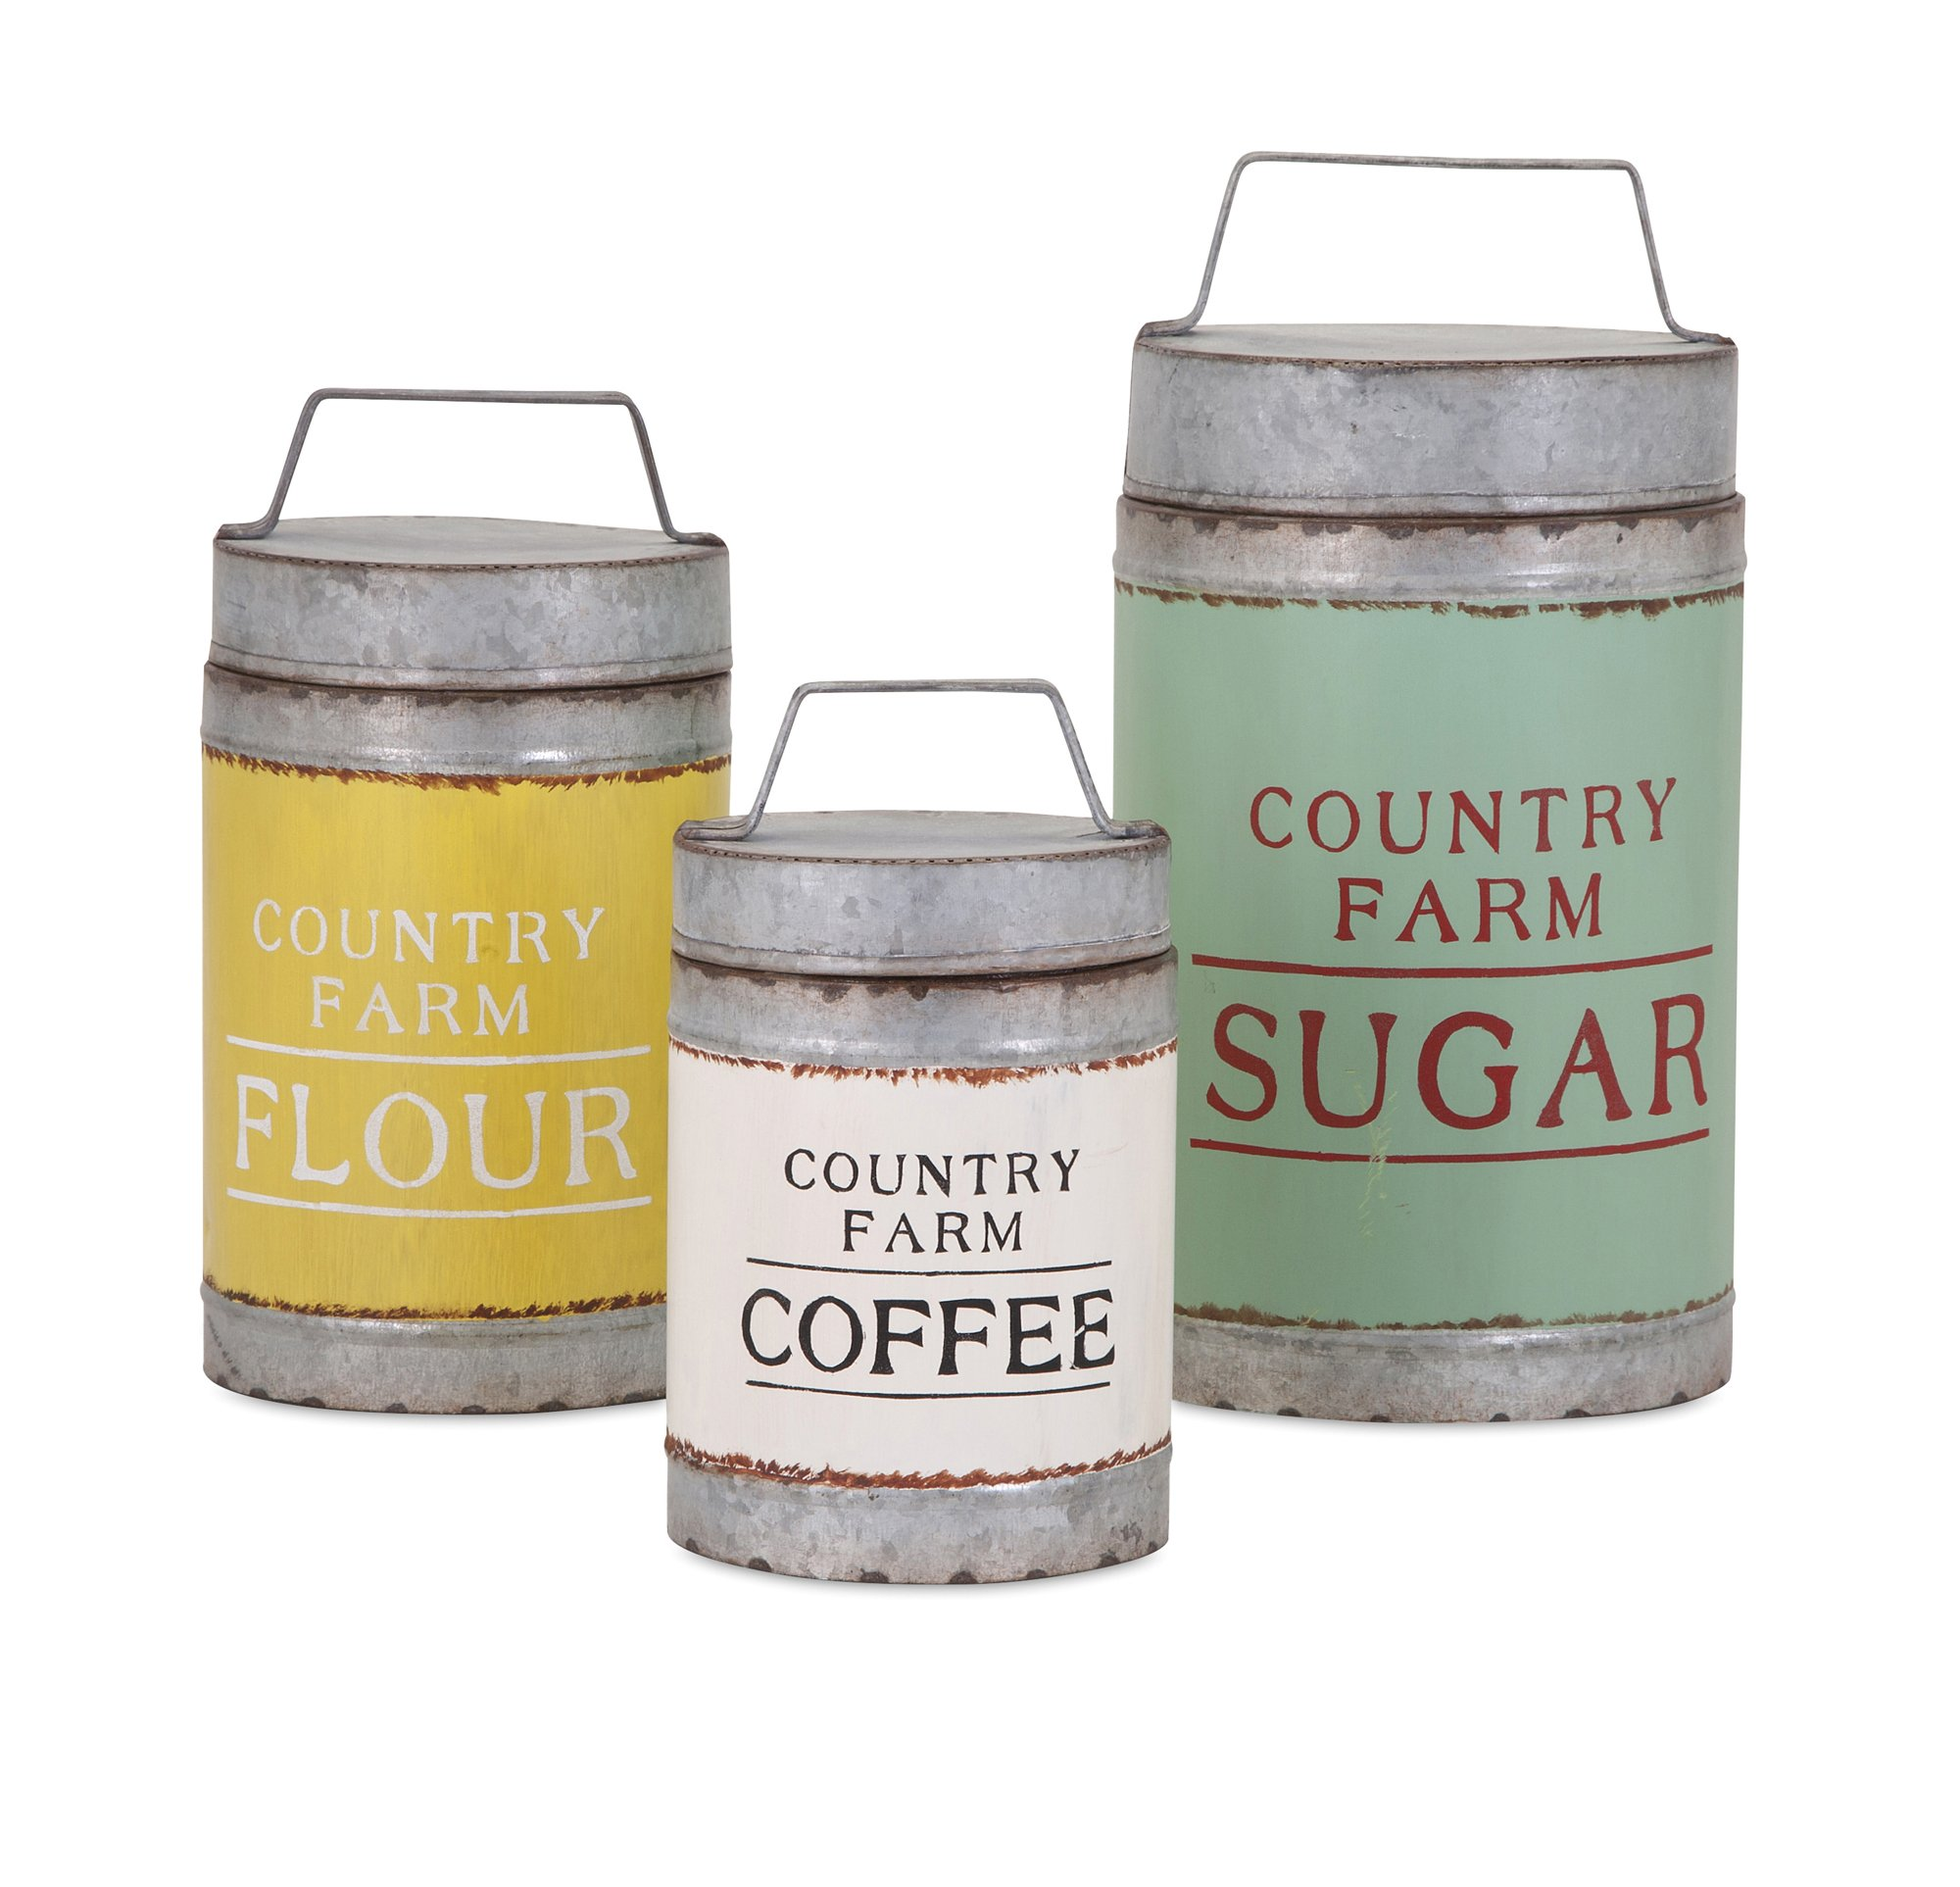 Imax 88665-3 Dairy Barn Decorative Lidded Containers-Set of Three by Imax